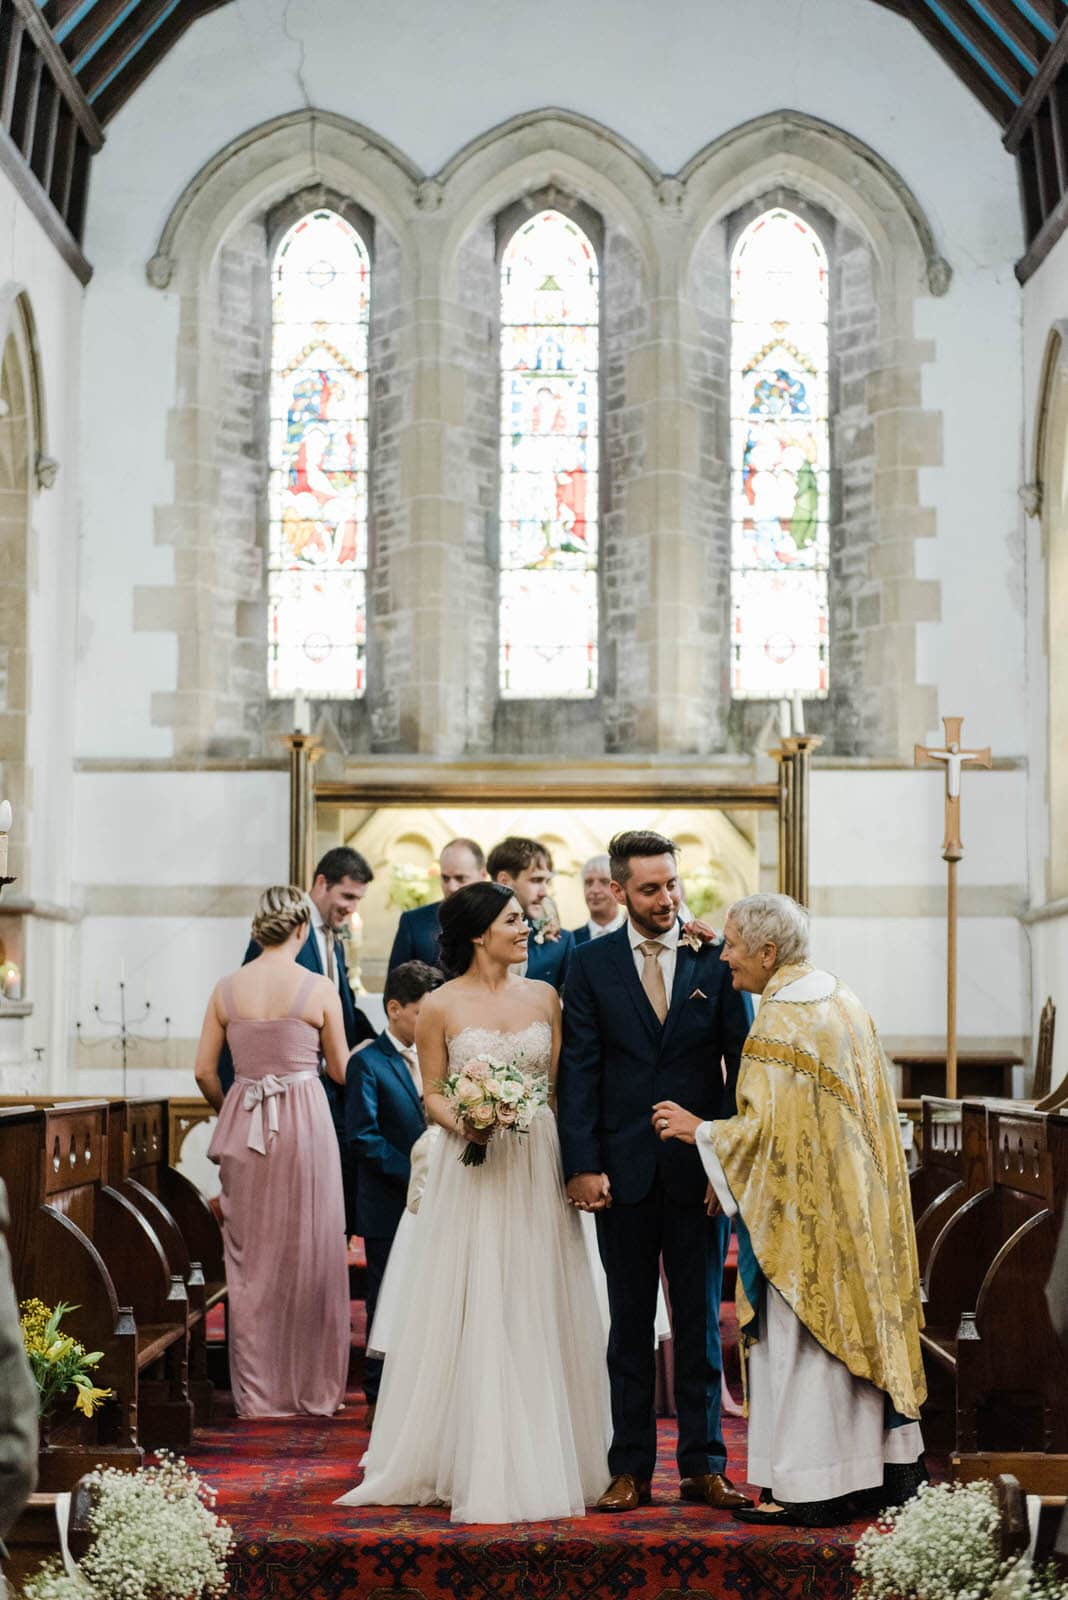 Bride and groom at their wedding ceremony in Harborough Church